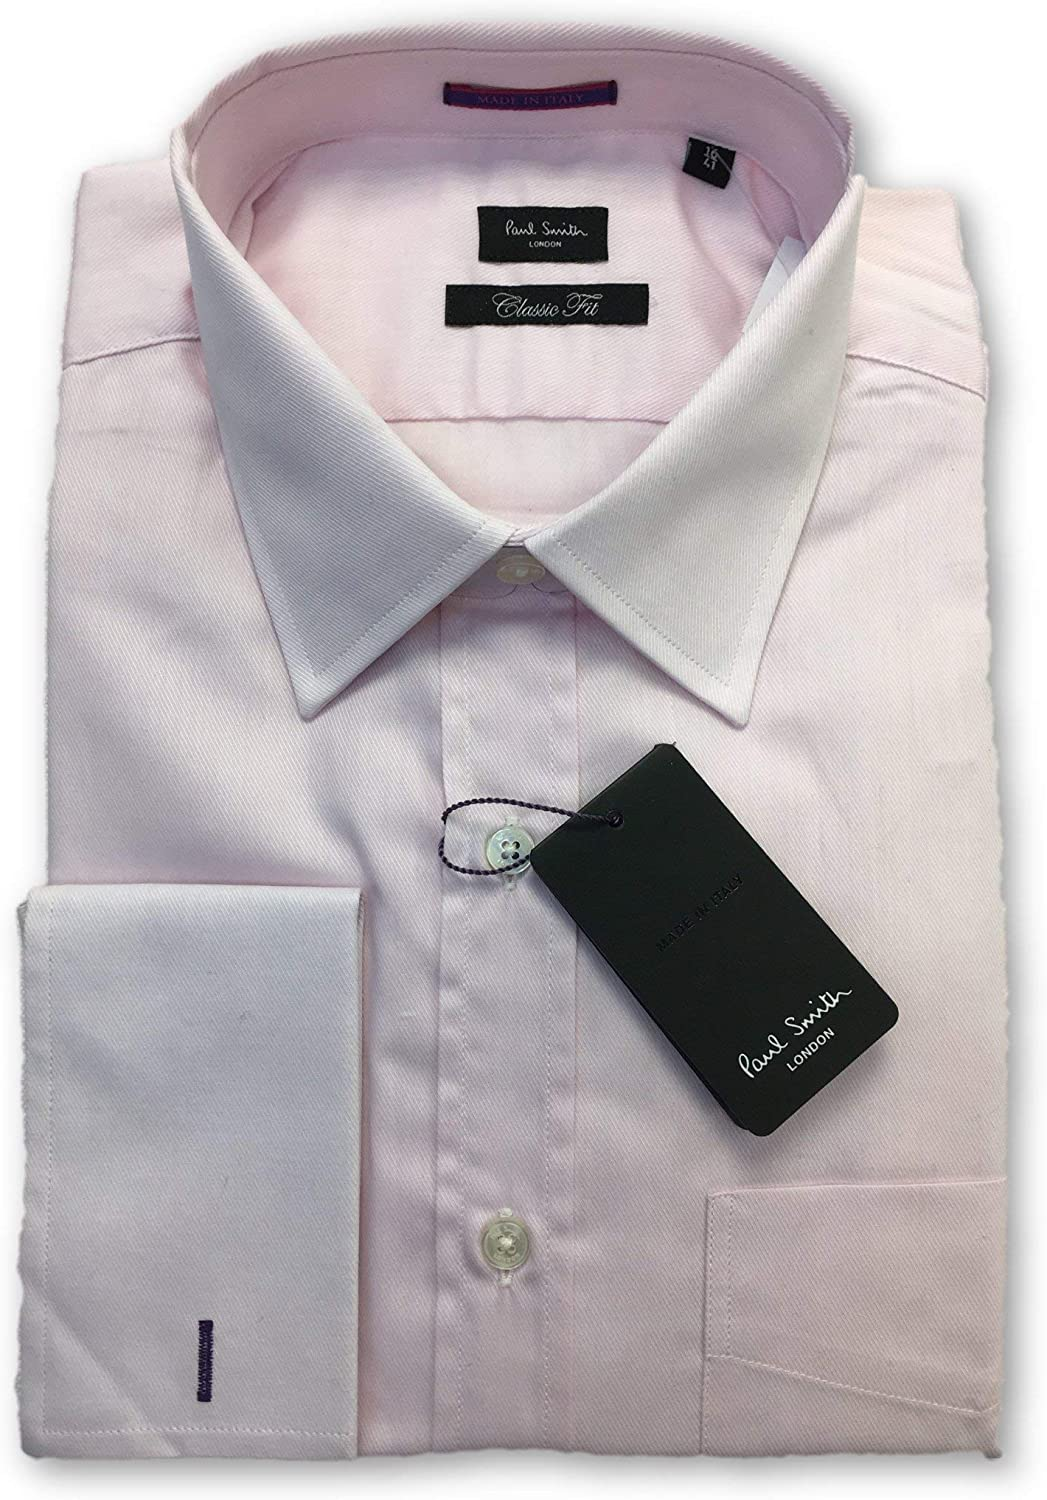 Paul Smith London Classic fit Double Cuff Shirt in Pink 15: Amazon.es: Ropa y accesorios